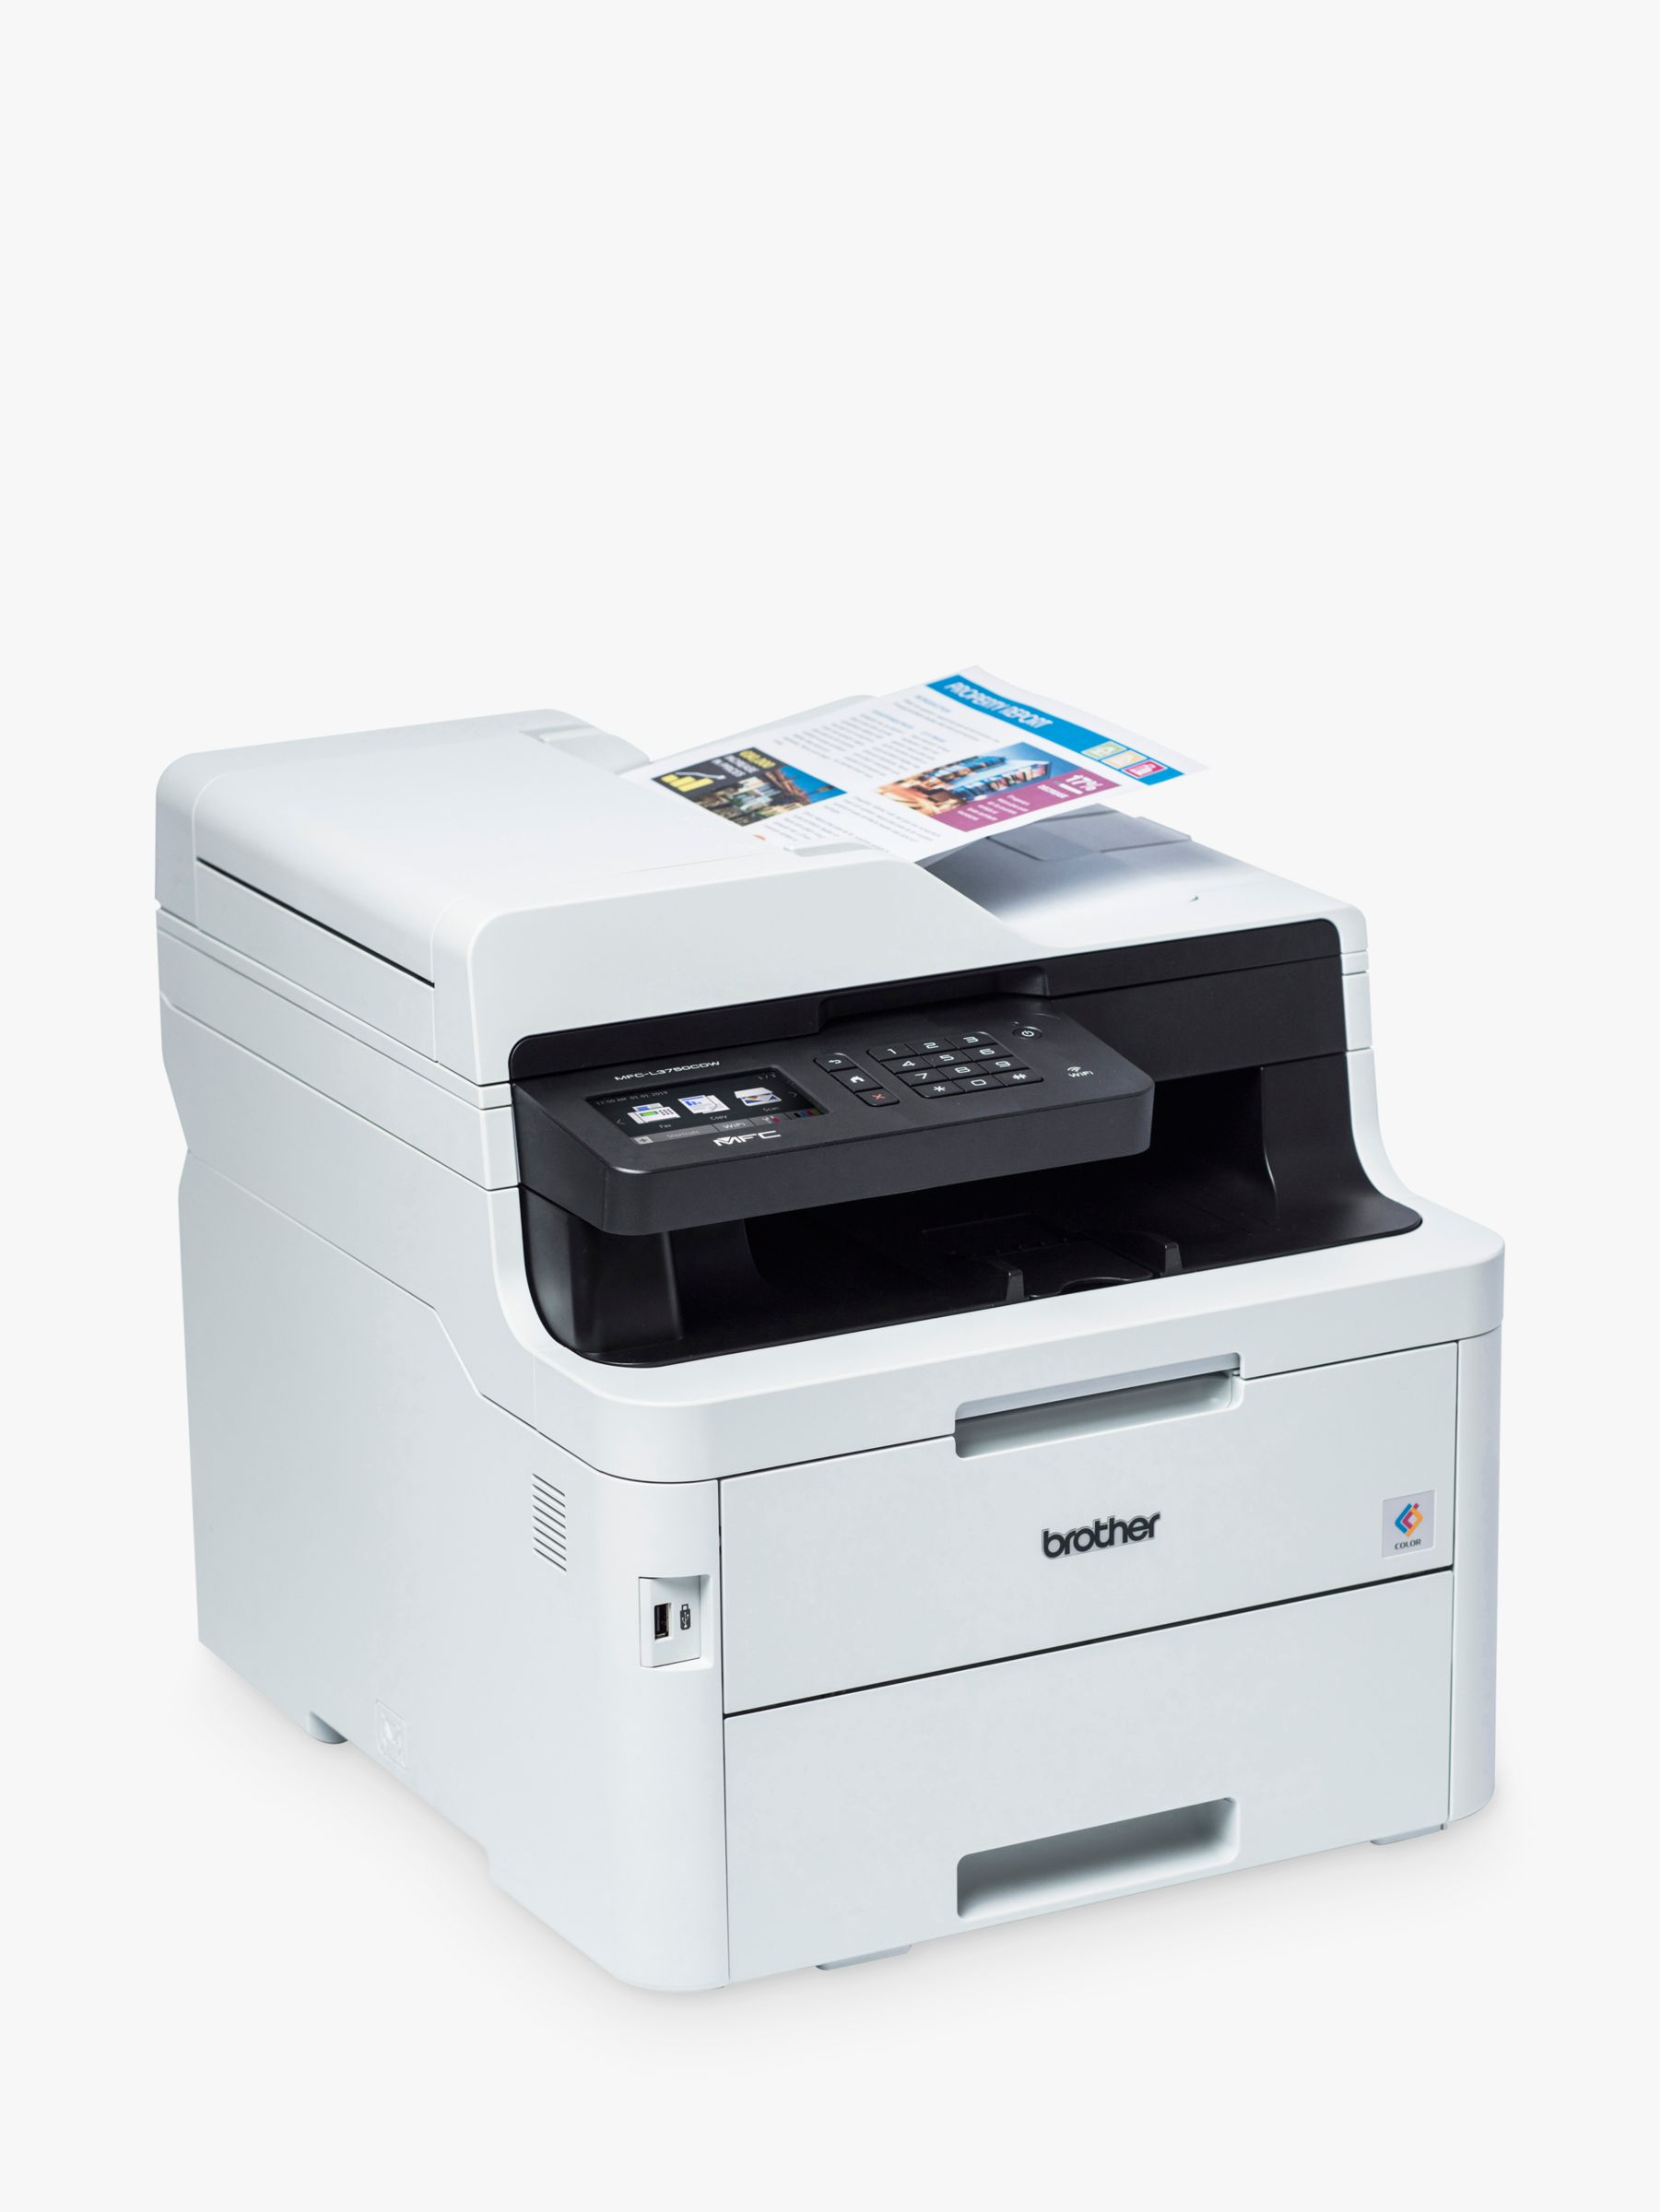 Brother MFC-L3750CDW Wireless All-in-One Colour Laser Printer & Fax Machine